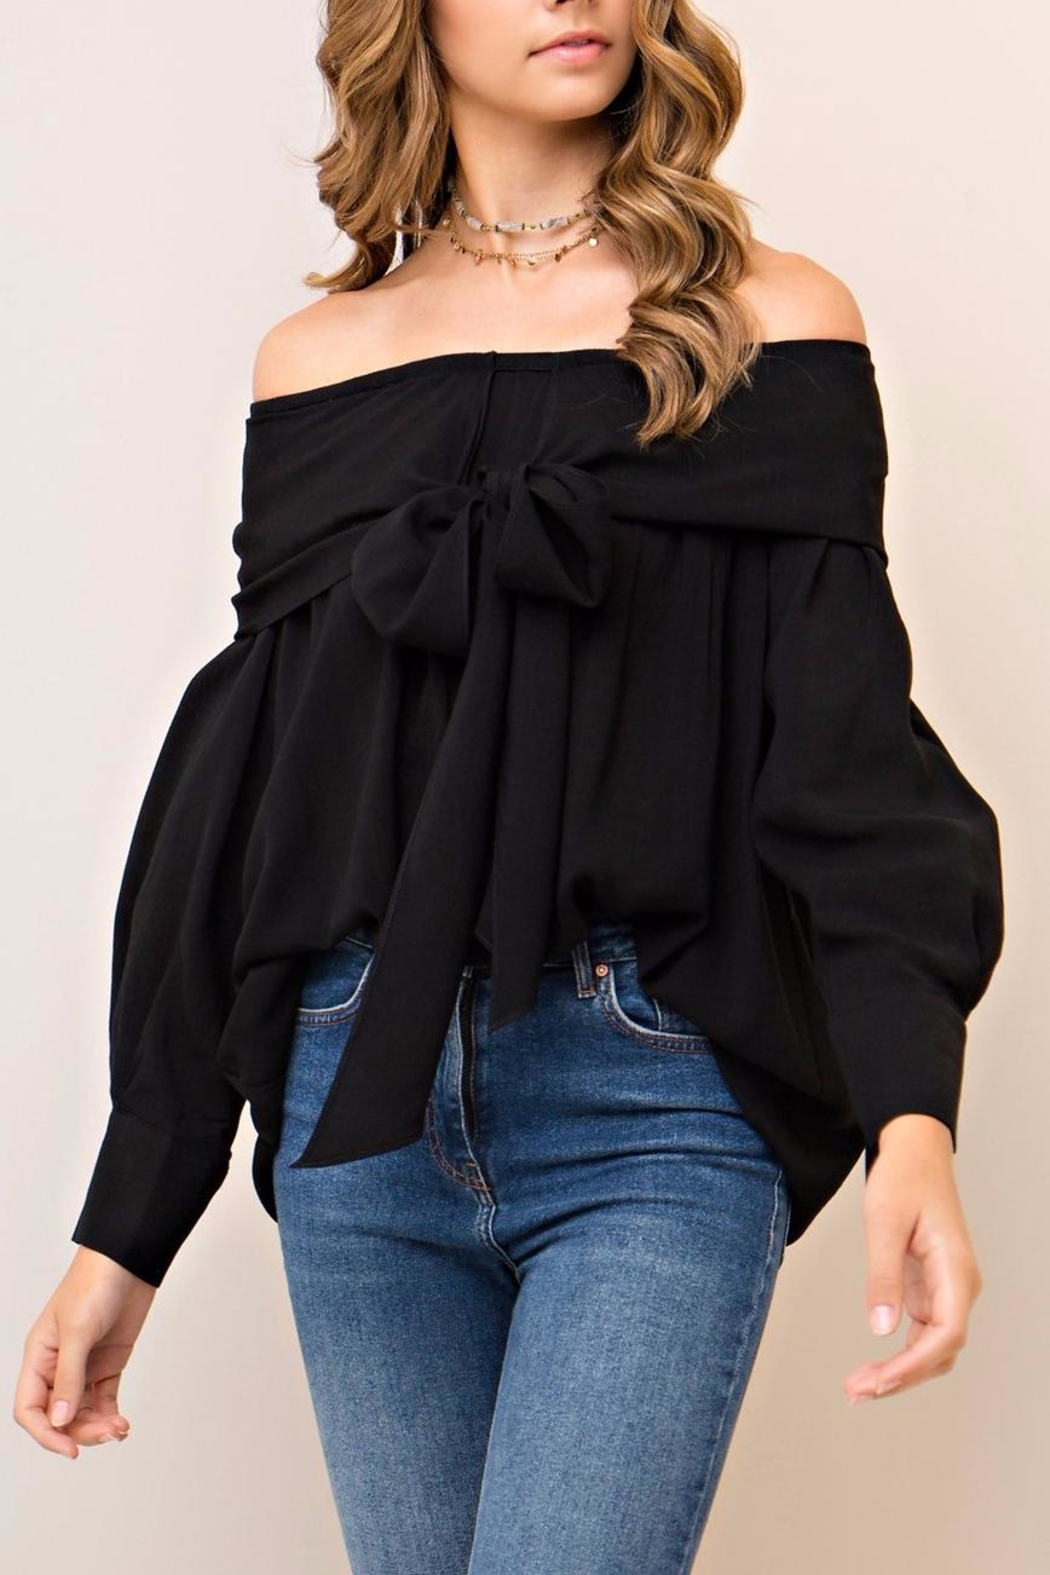 People Outfitter Aston Black Top - Back Cropped Image